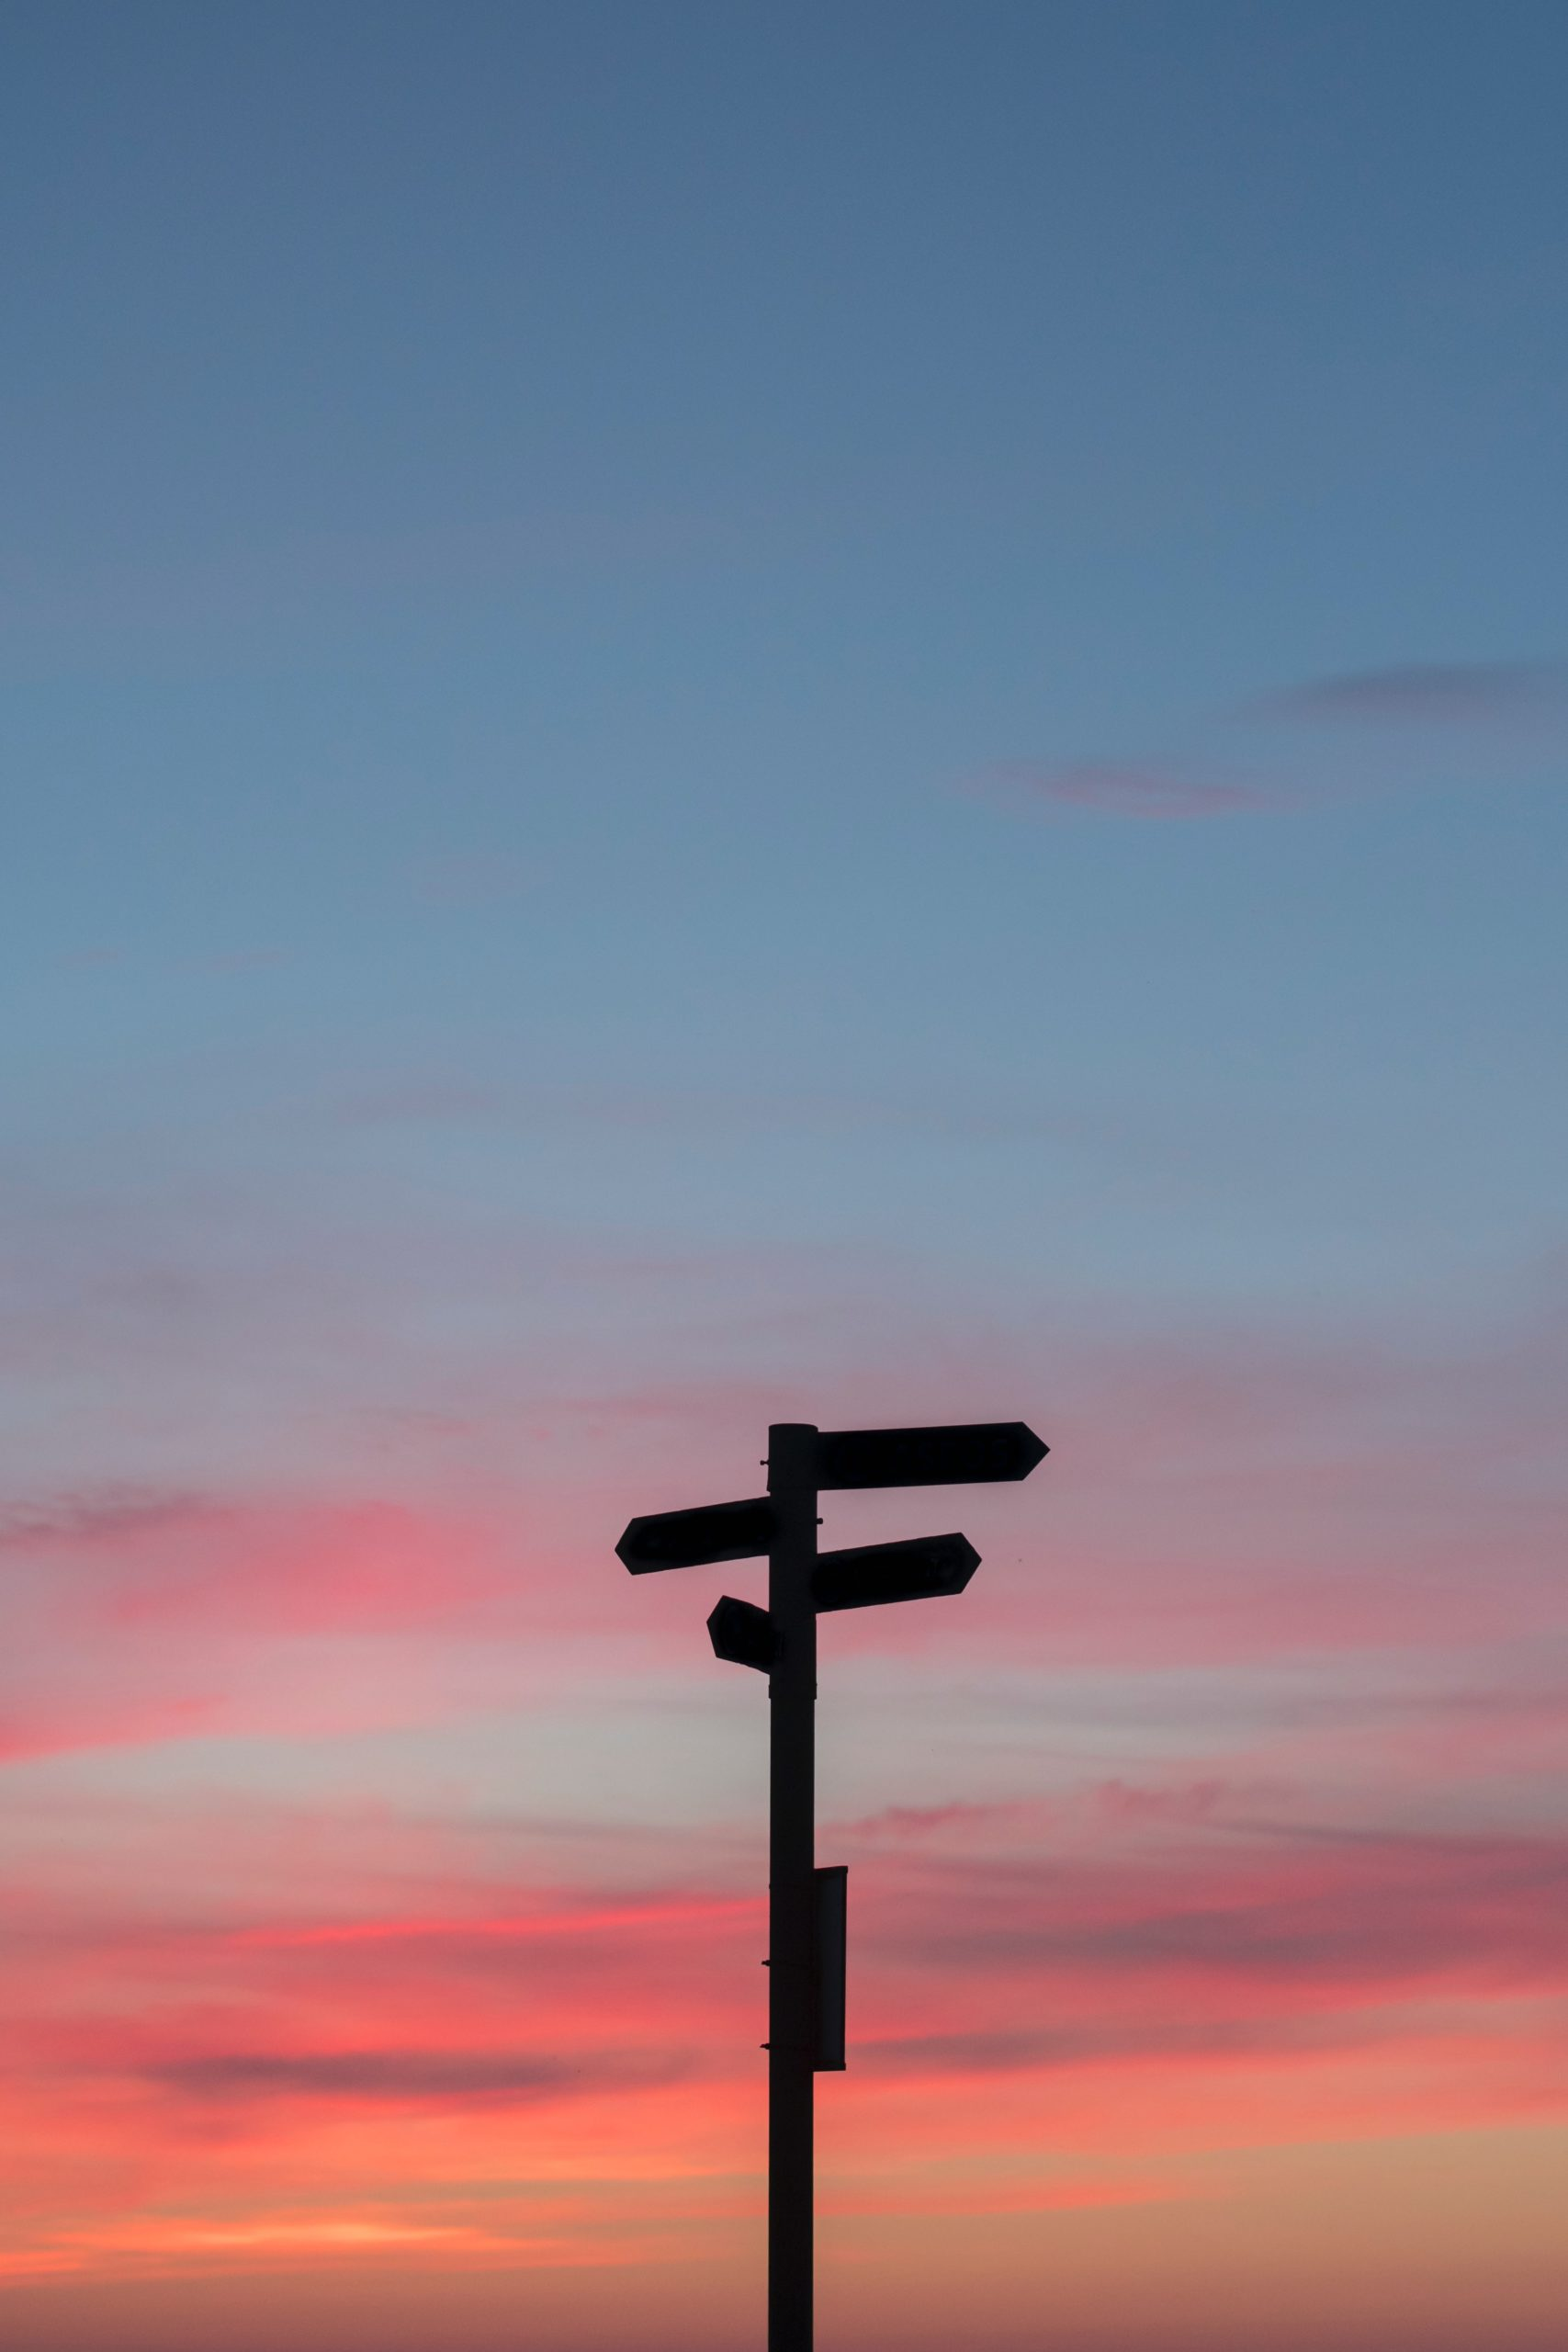 Signpost with signs pointing in multiple directions against a firey sunset sky backdrop